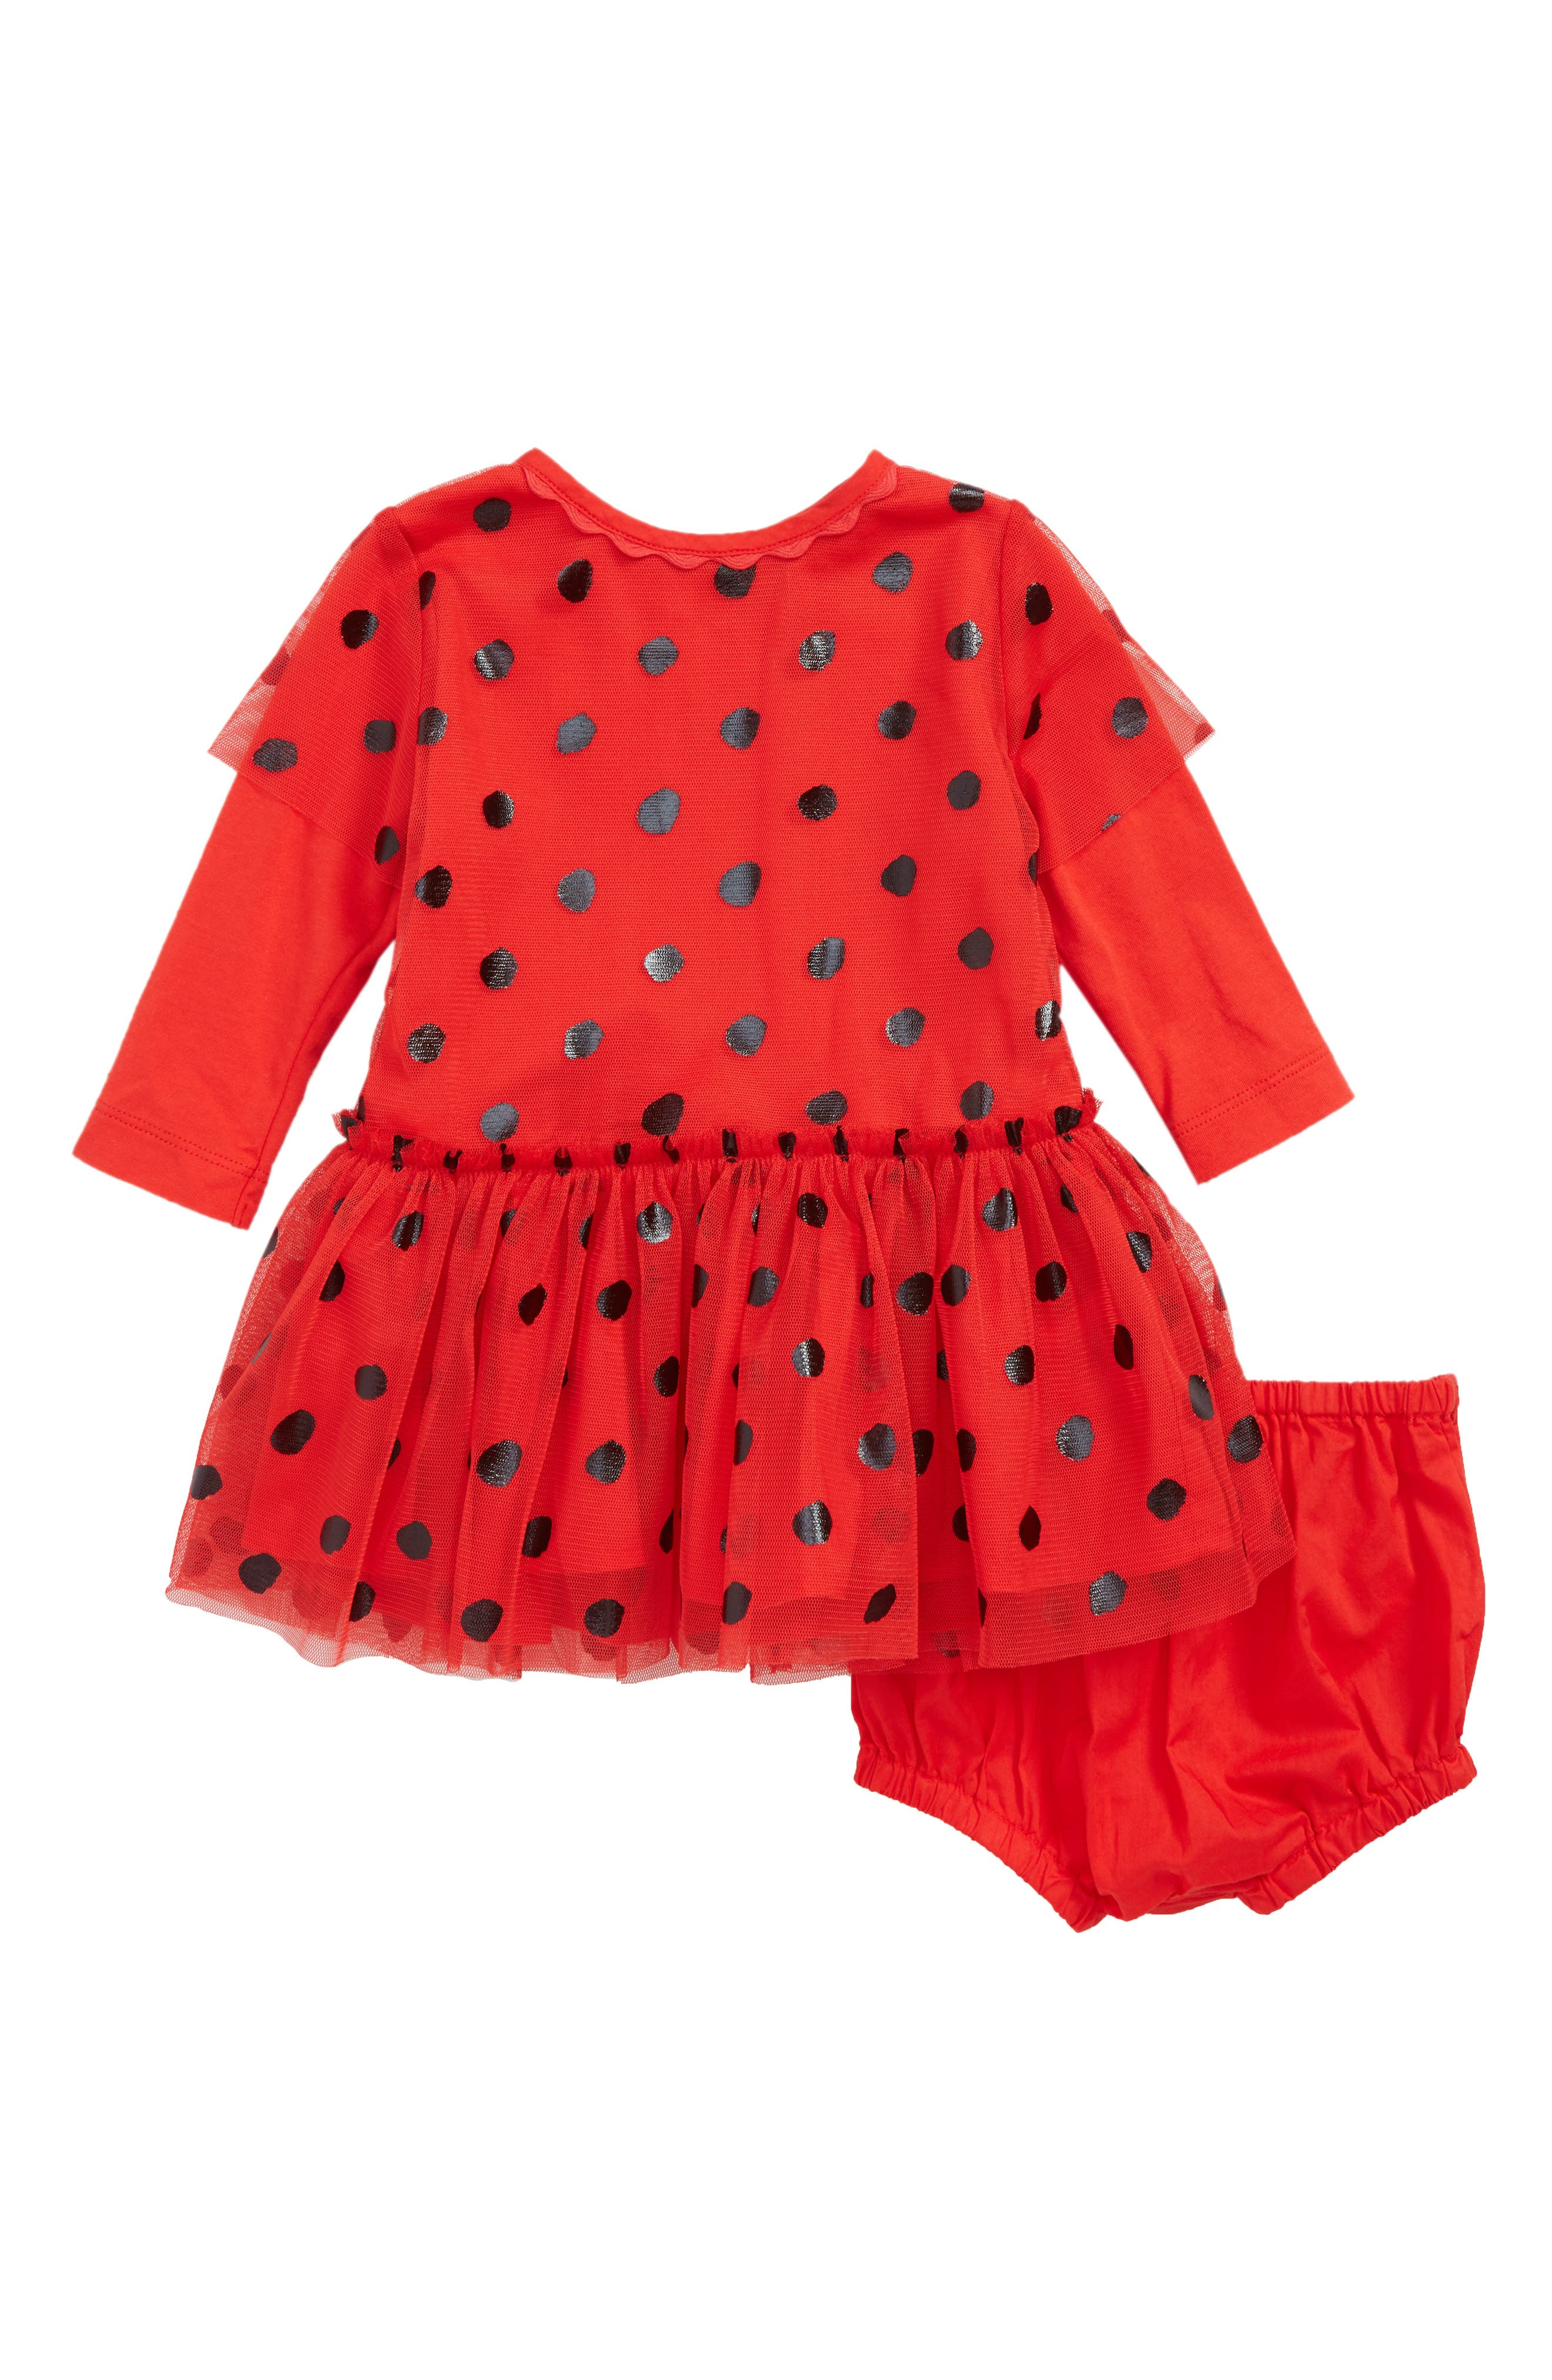 Mouse Dress & Wings Set,                         Main,                         color, Red Black